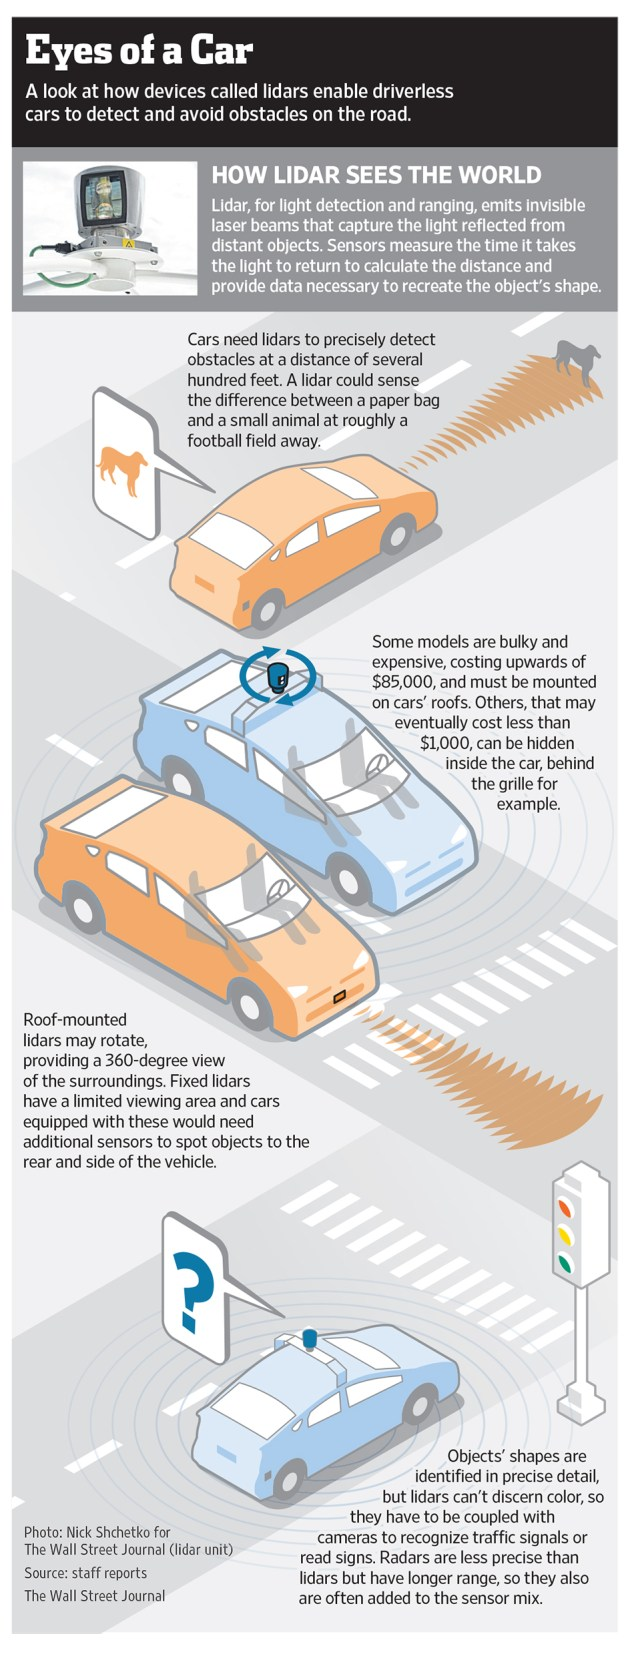 Image: Eyes of a Car via Wall Street Journal.